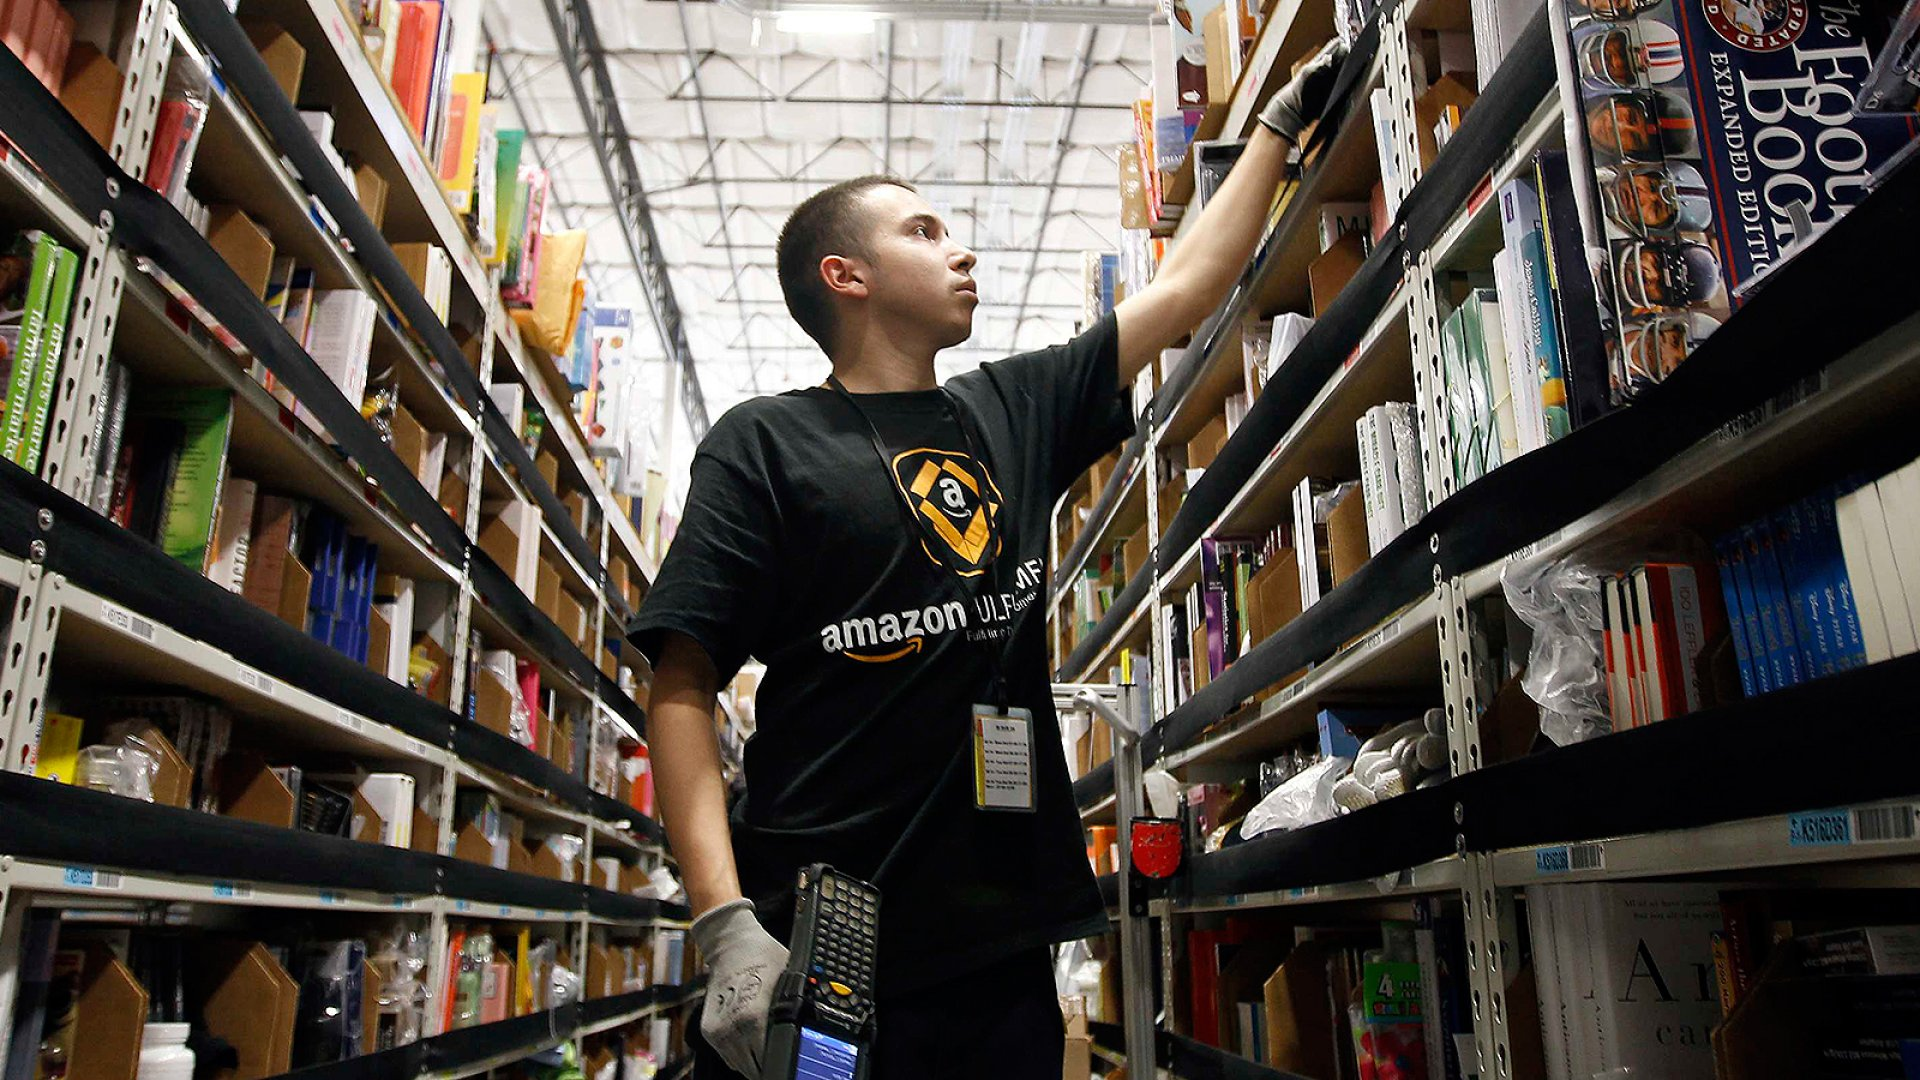 A worker gathers items for delivery from the warehouse floor at Amazon's distribution center in Phoenix.